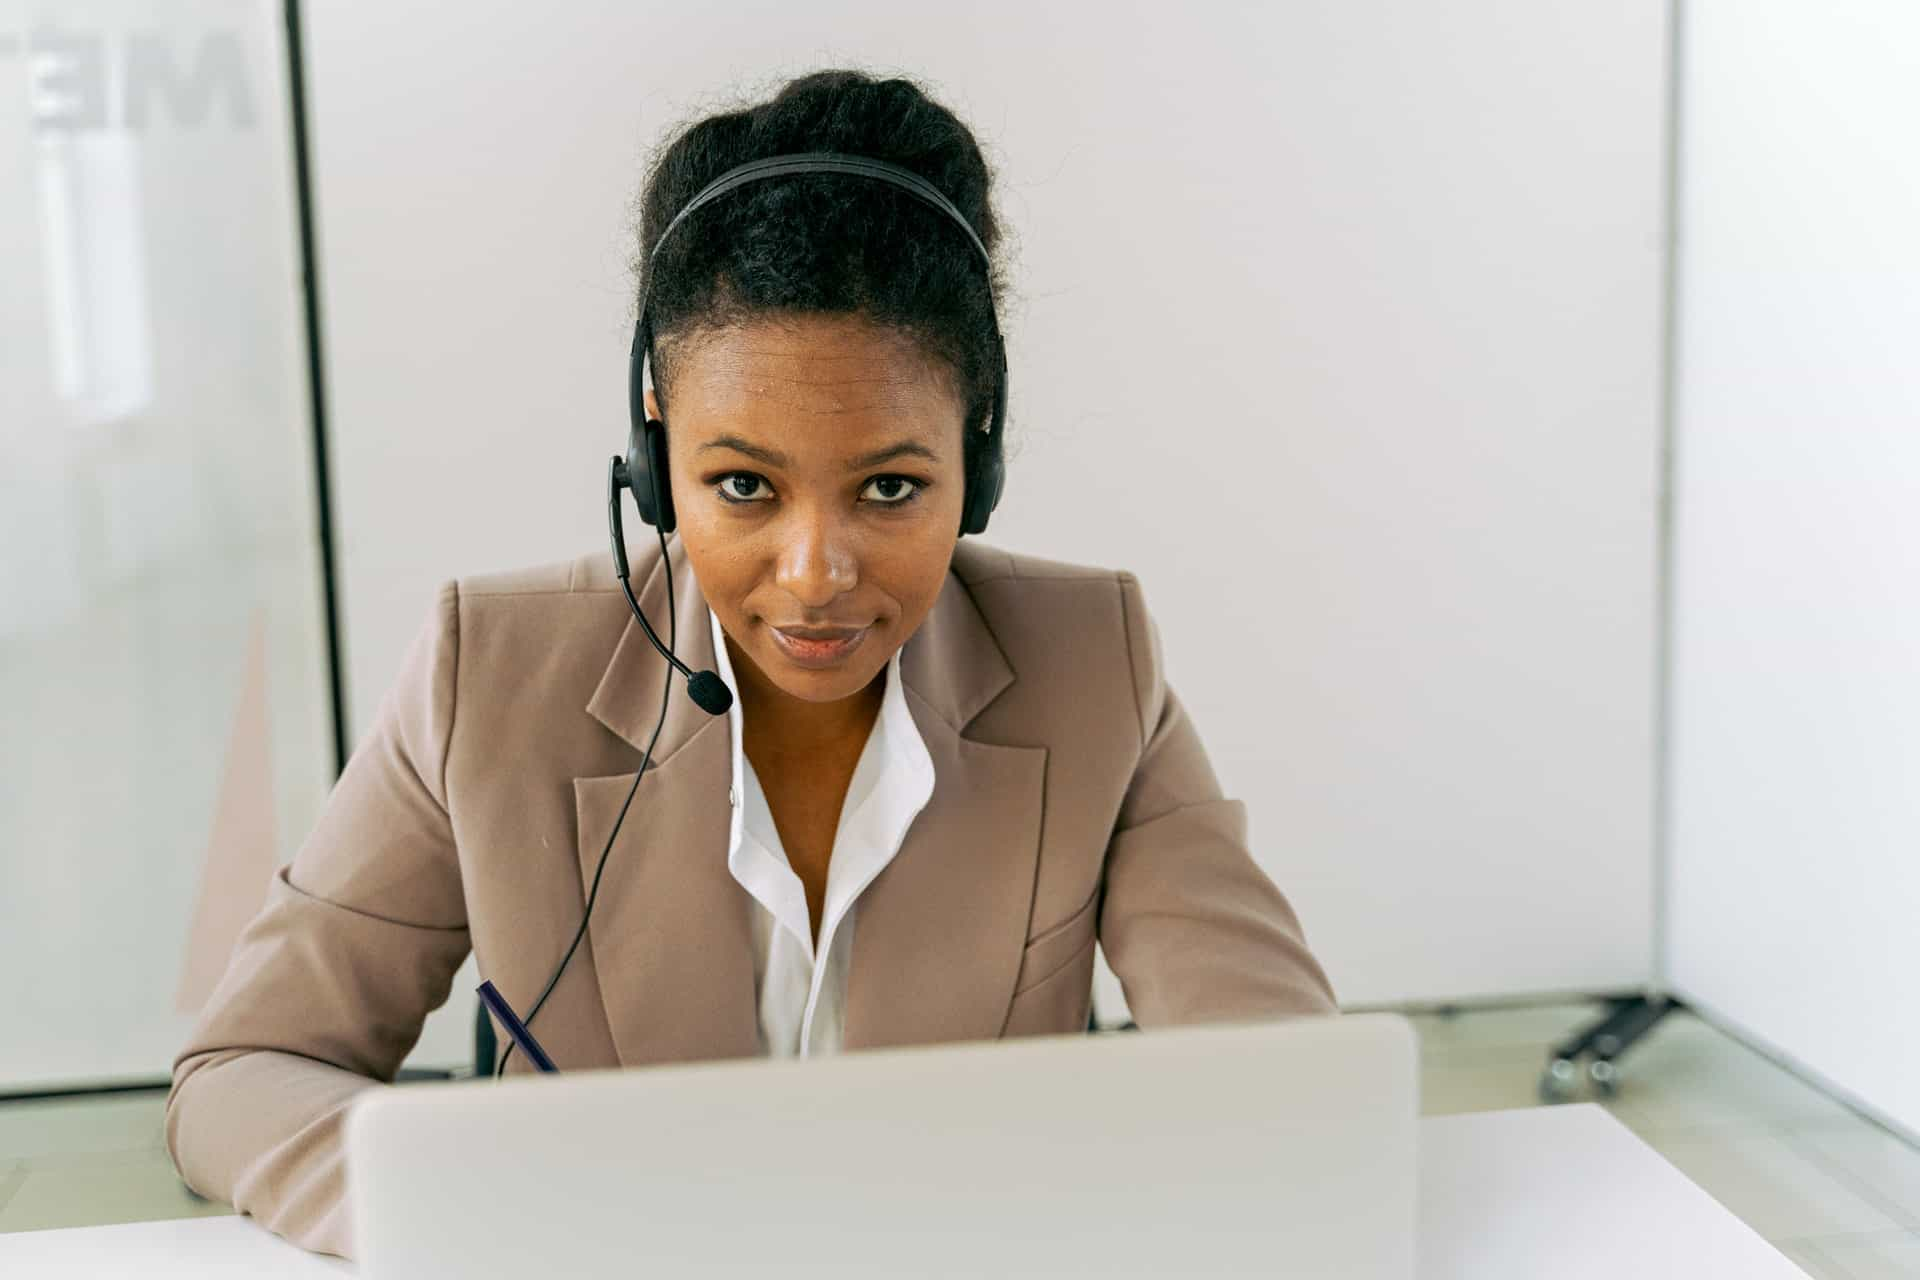 Female customer service agent in office